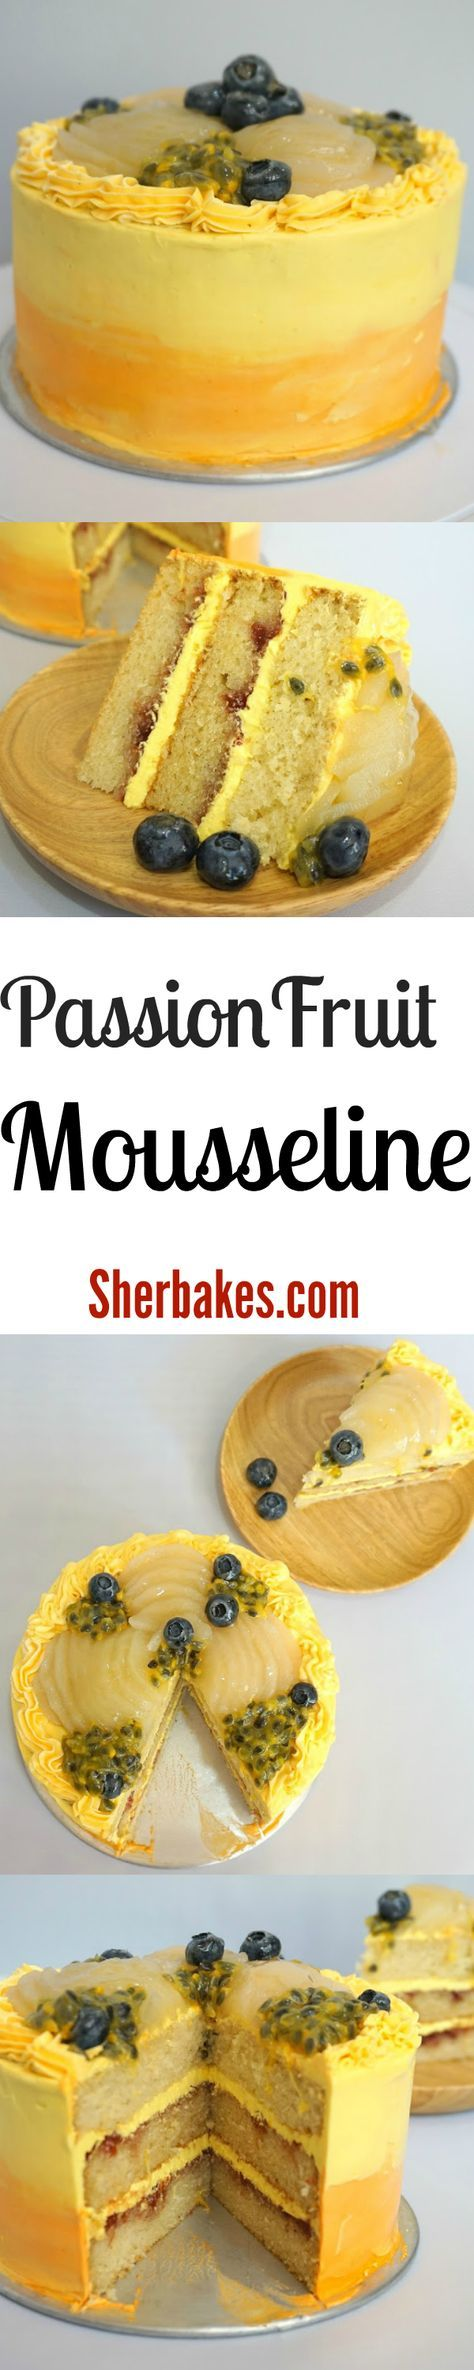 Passionfruit Mousseline - Tangy Filling for your cakes #buttercream #passionfruit